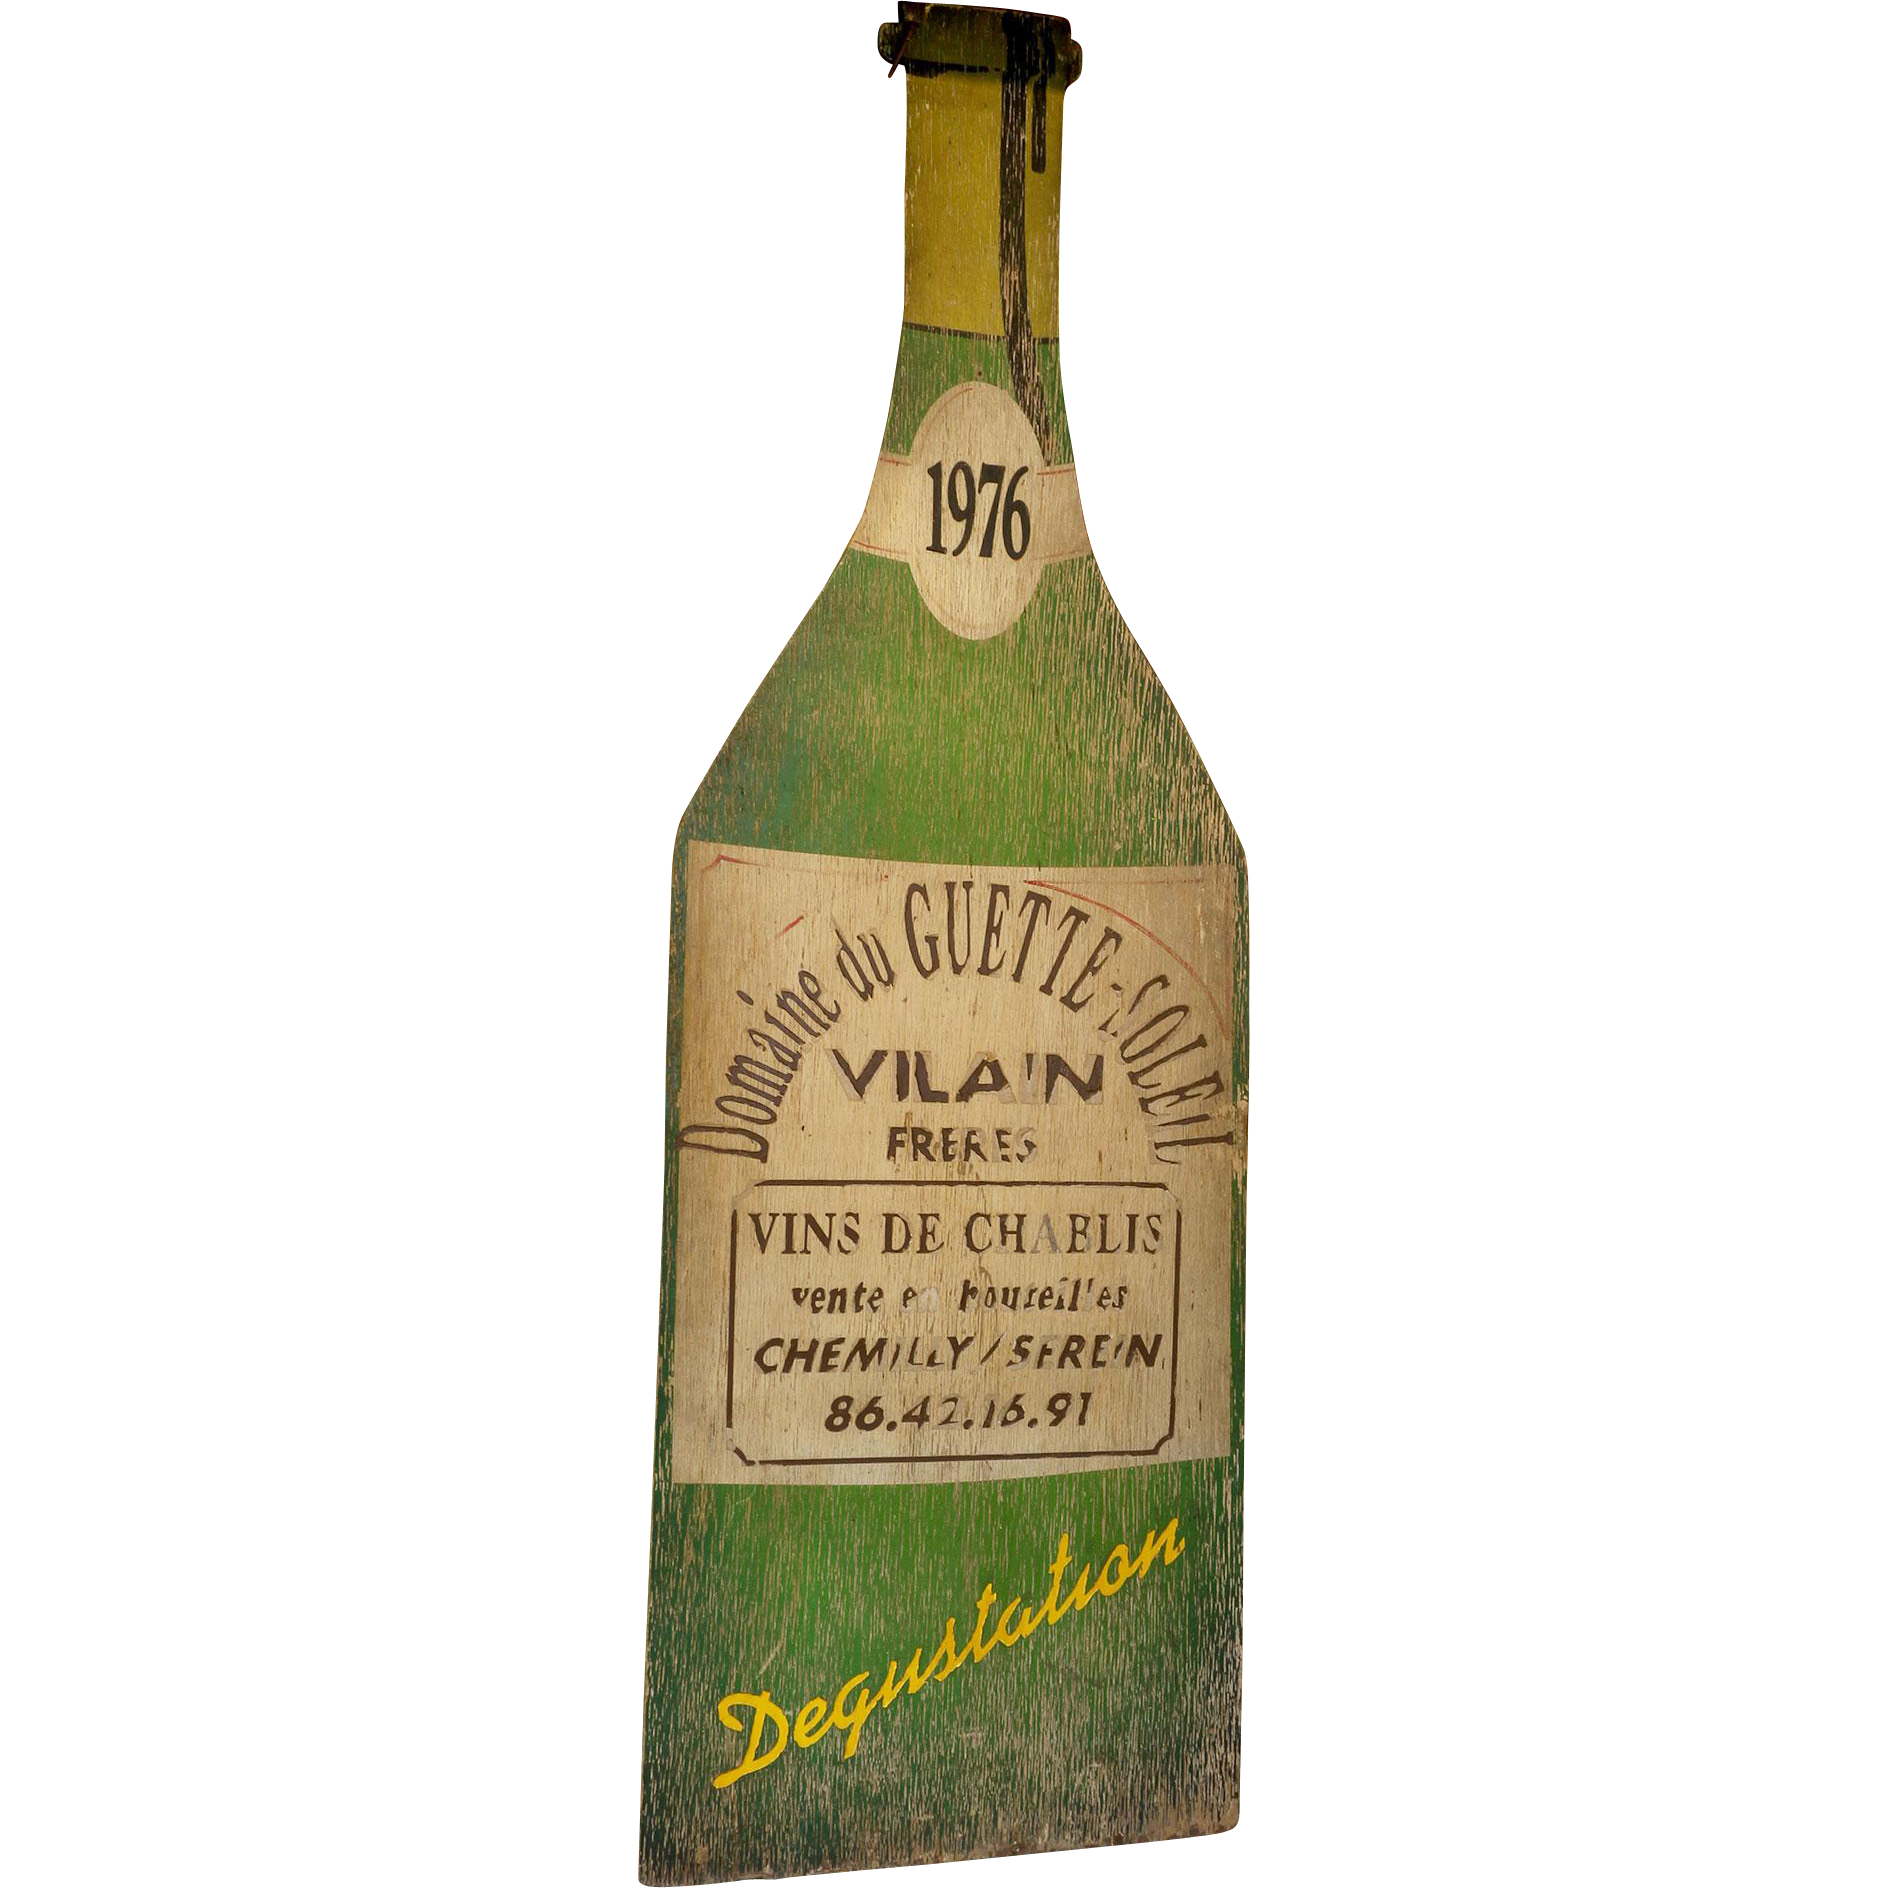 Giant Painted Wood Advertising Bottle for Chablis Wine